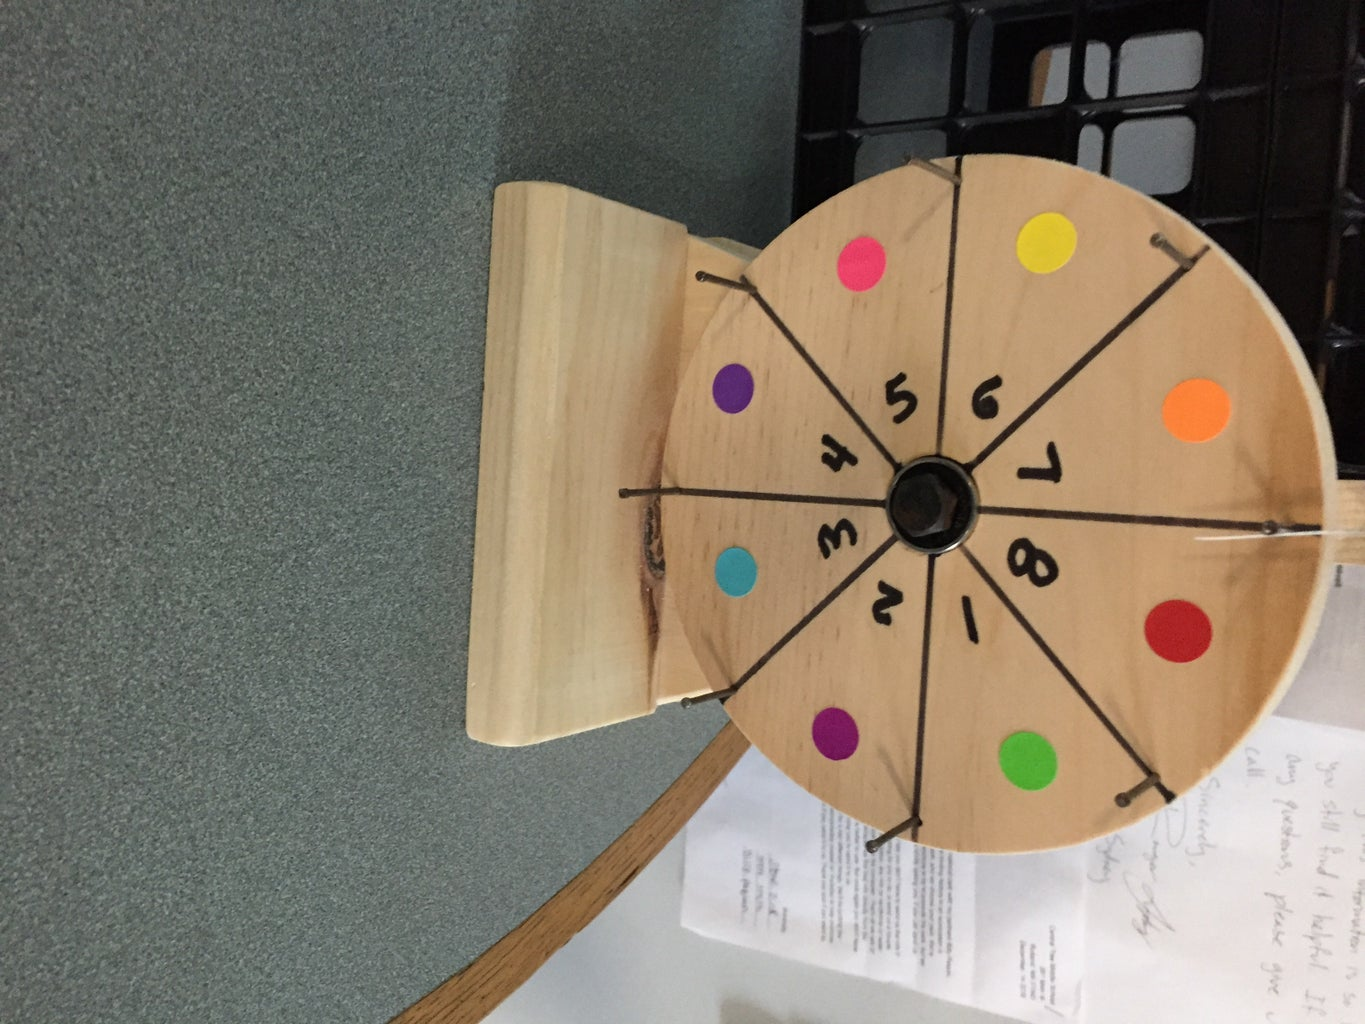 Creating the Game Cards and Spinning Wheels for the Game